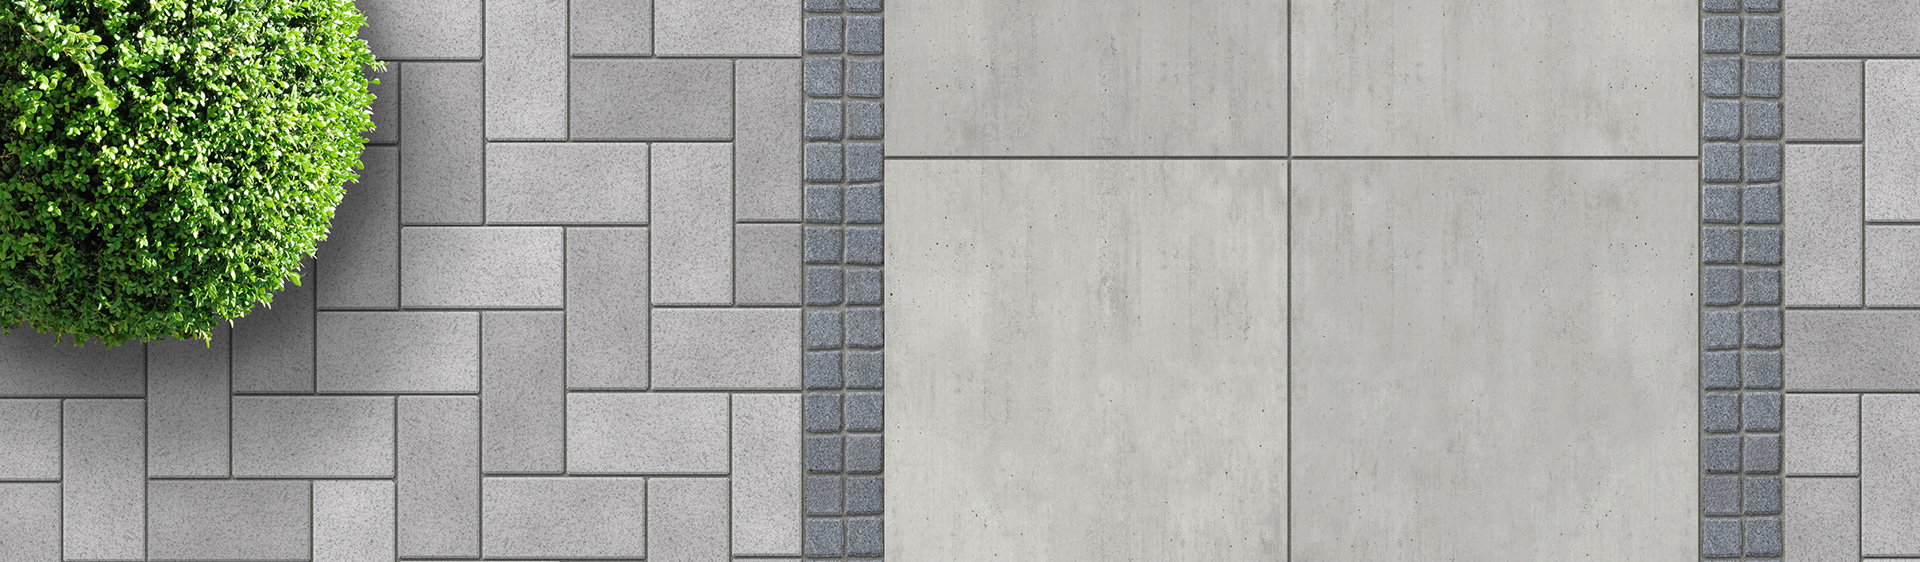 Port St. Lucie Brick Paver Installation Services, Retaining Wall Construction and Outdoor Kitchen Construction